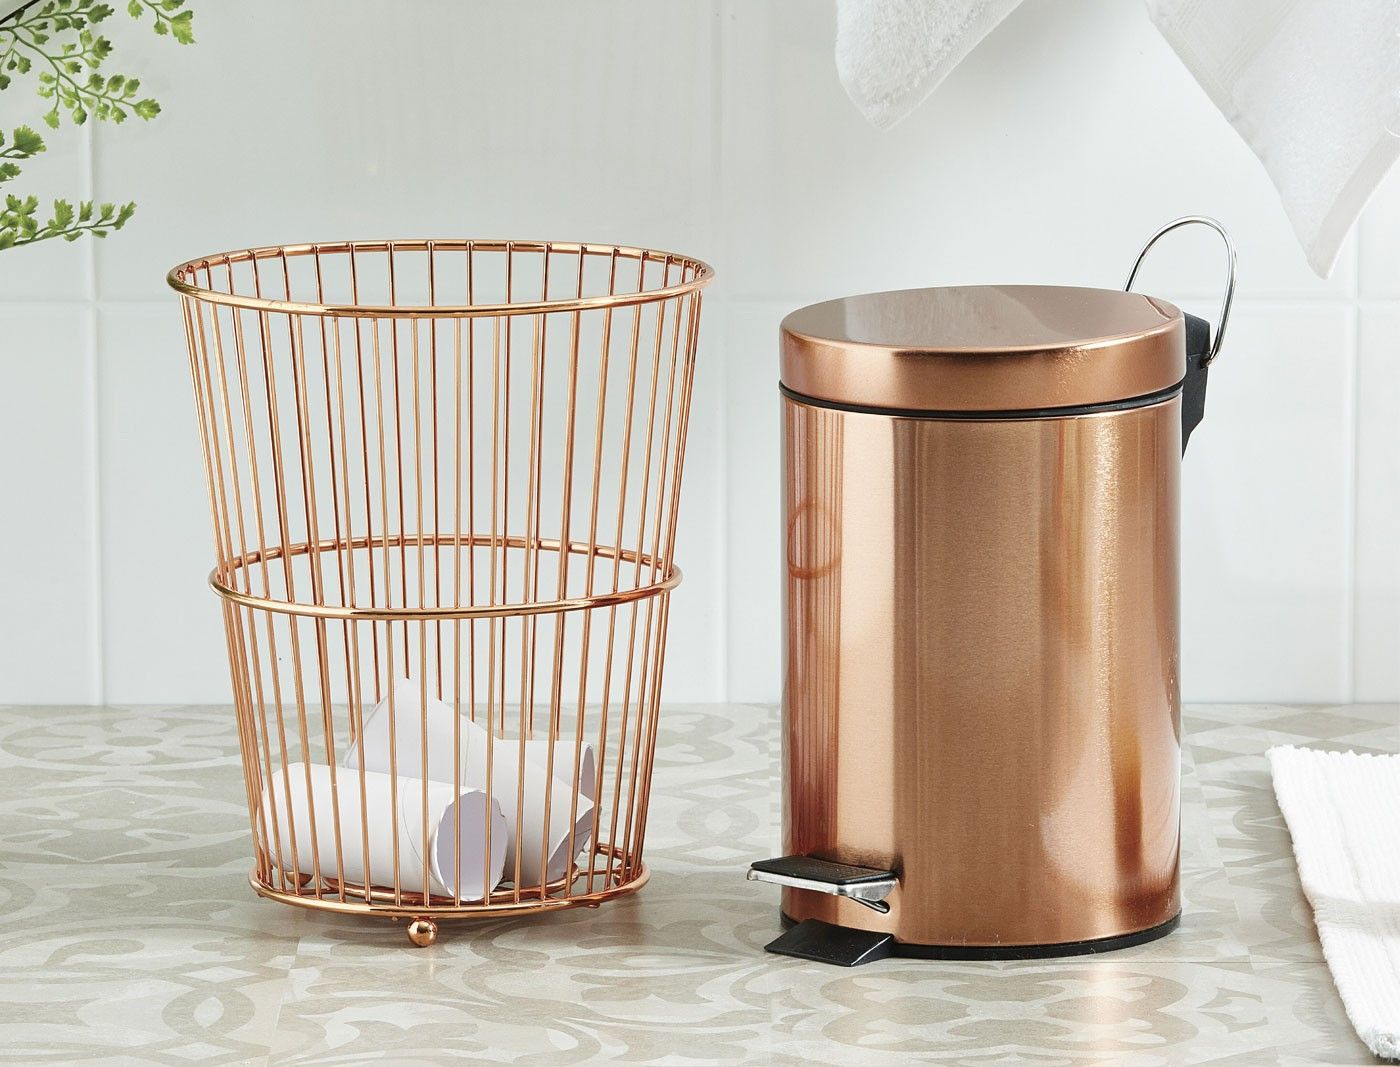 rose gold bathroom accessories. A stylish range of bathroom accessories for all your storage needs  Copper Soho will suit Best 25 Modern ideas on Pinterest Bathroom